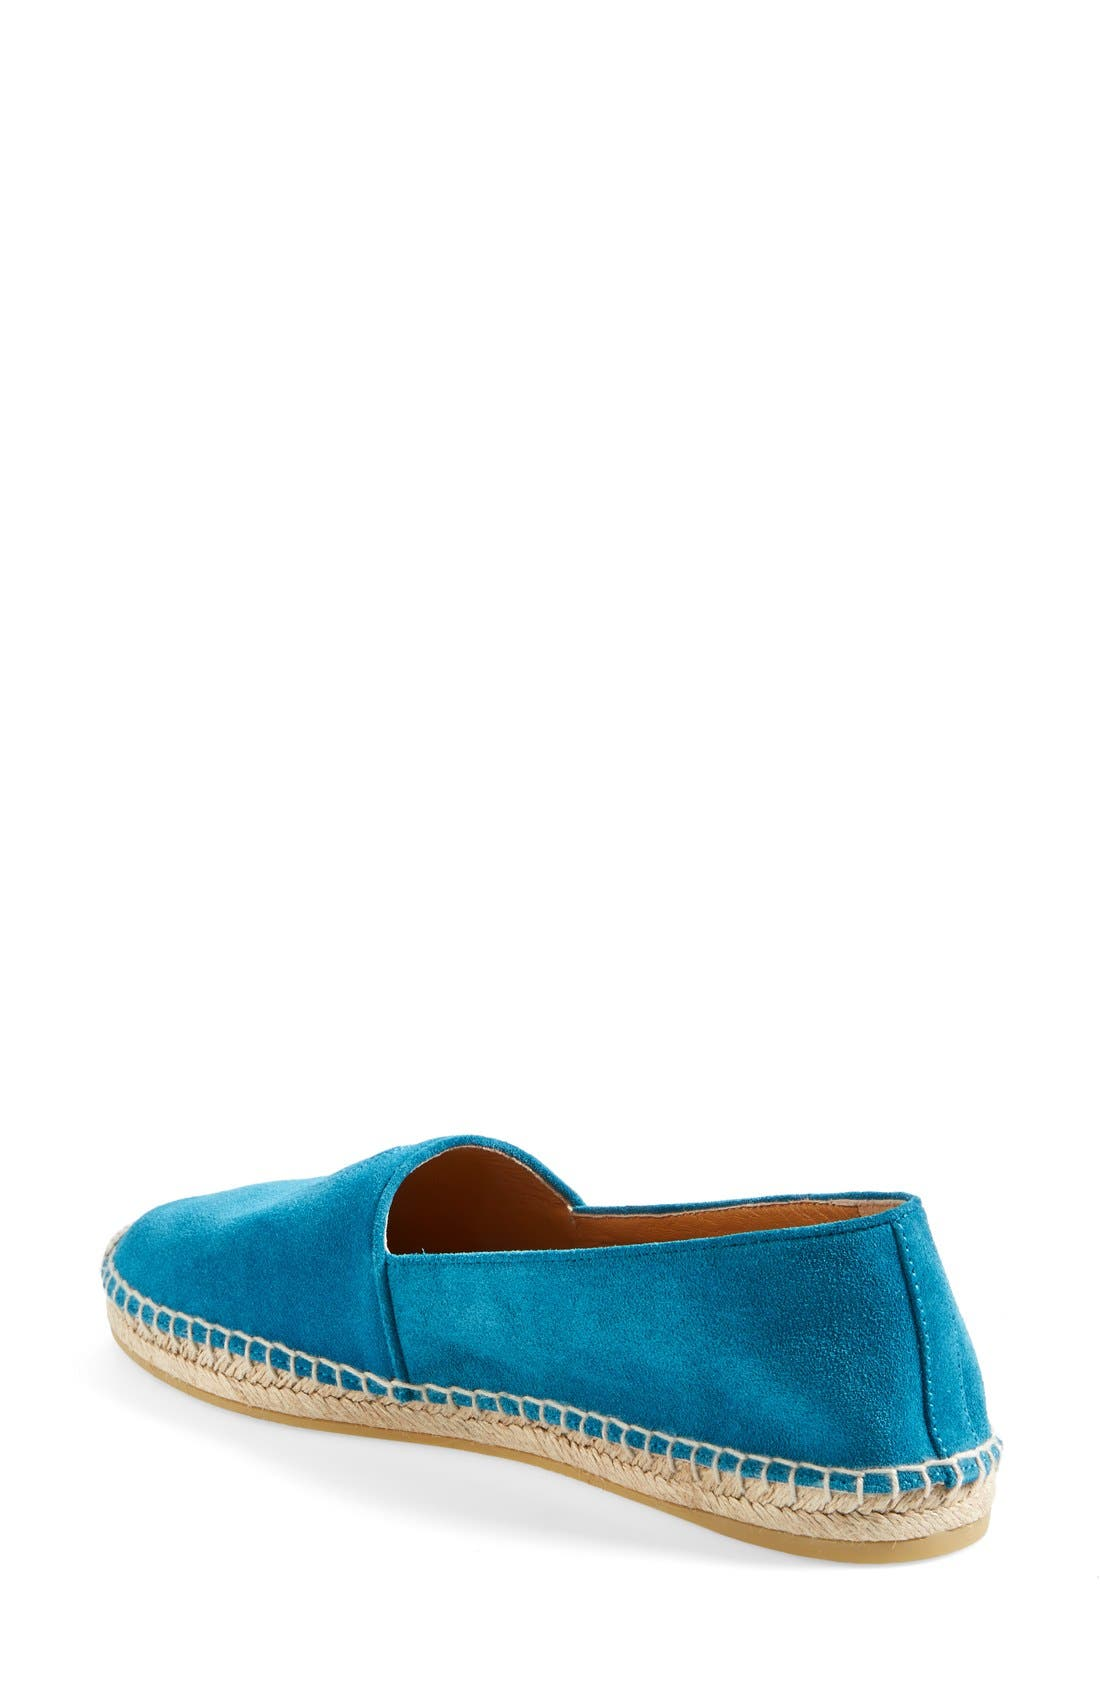 Alternate Image 2  - Gucci 'Pilar' Espadrille Flat (Women)